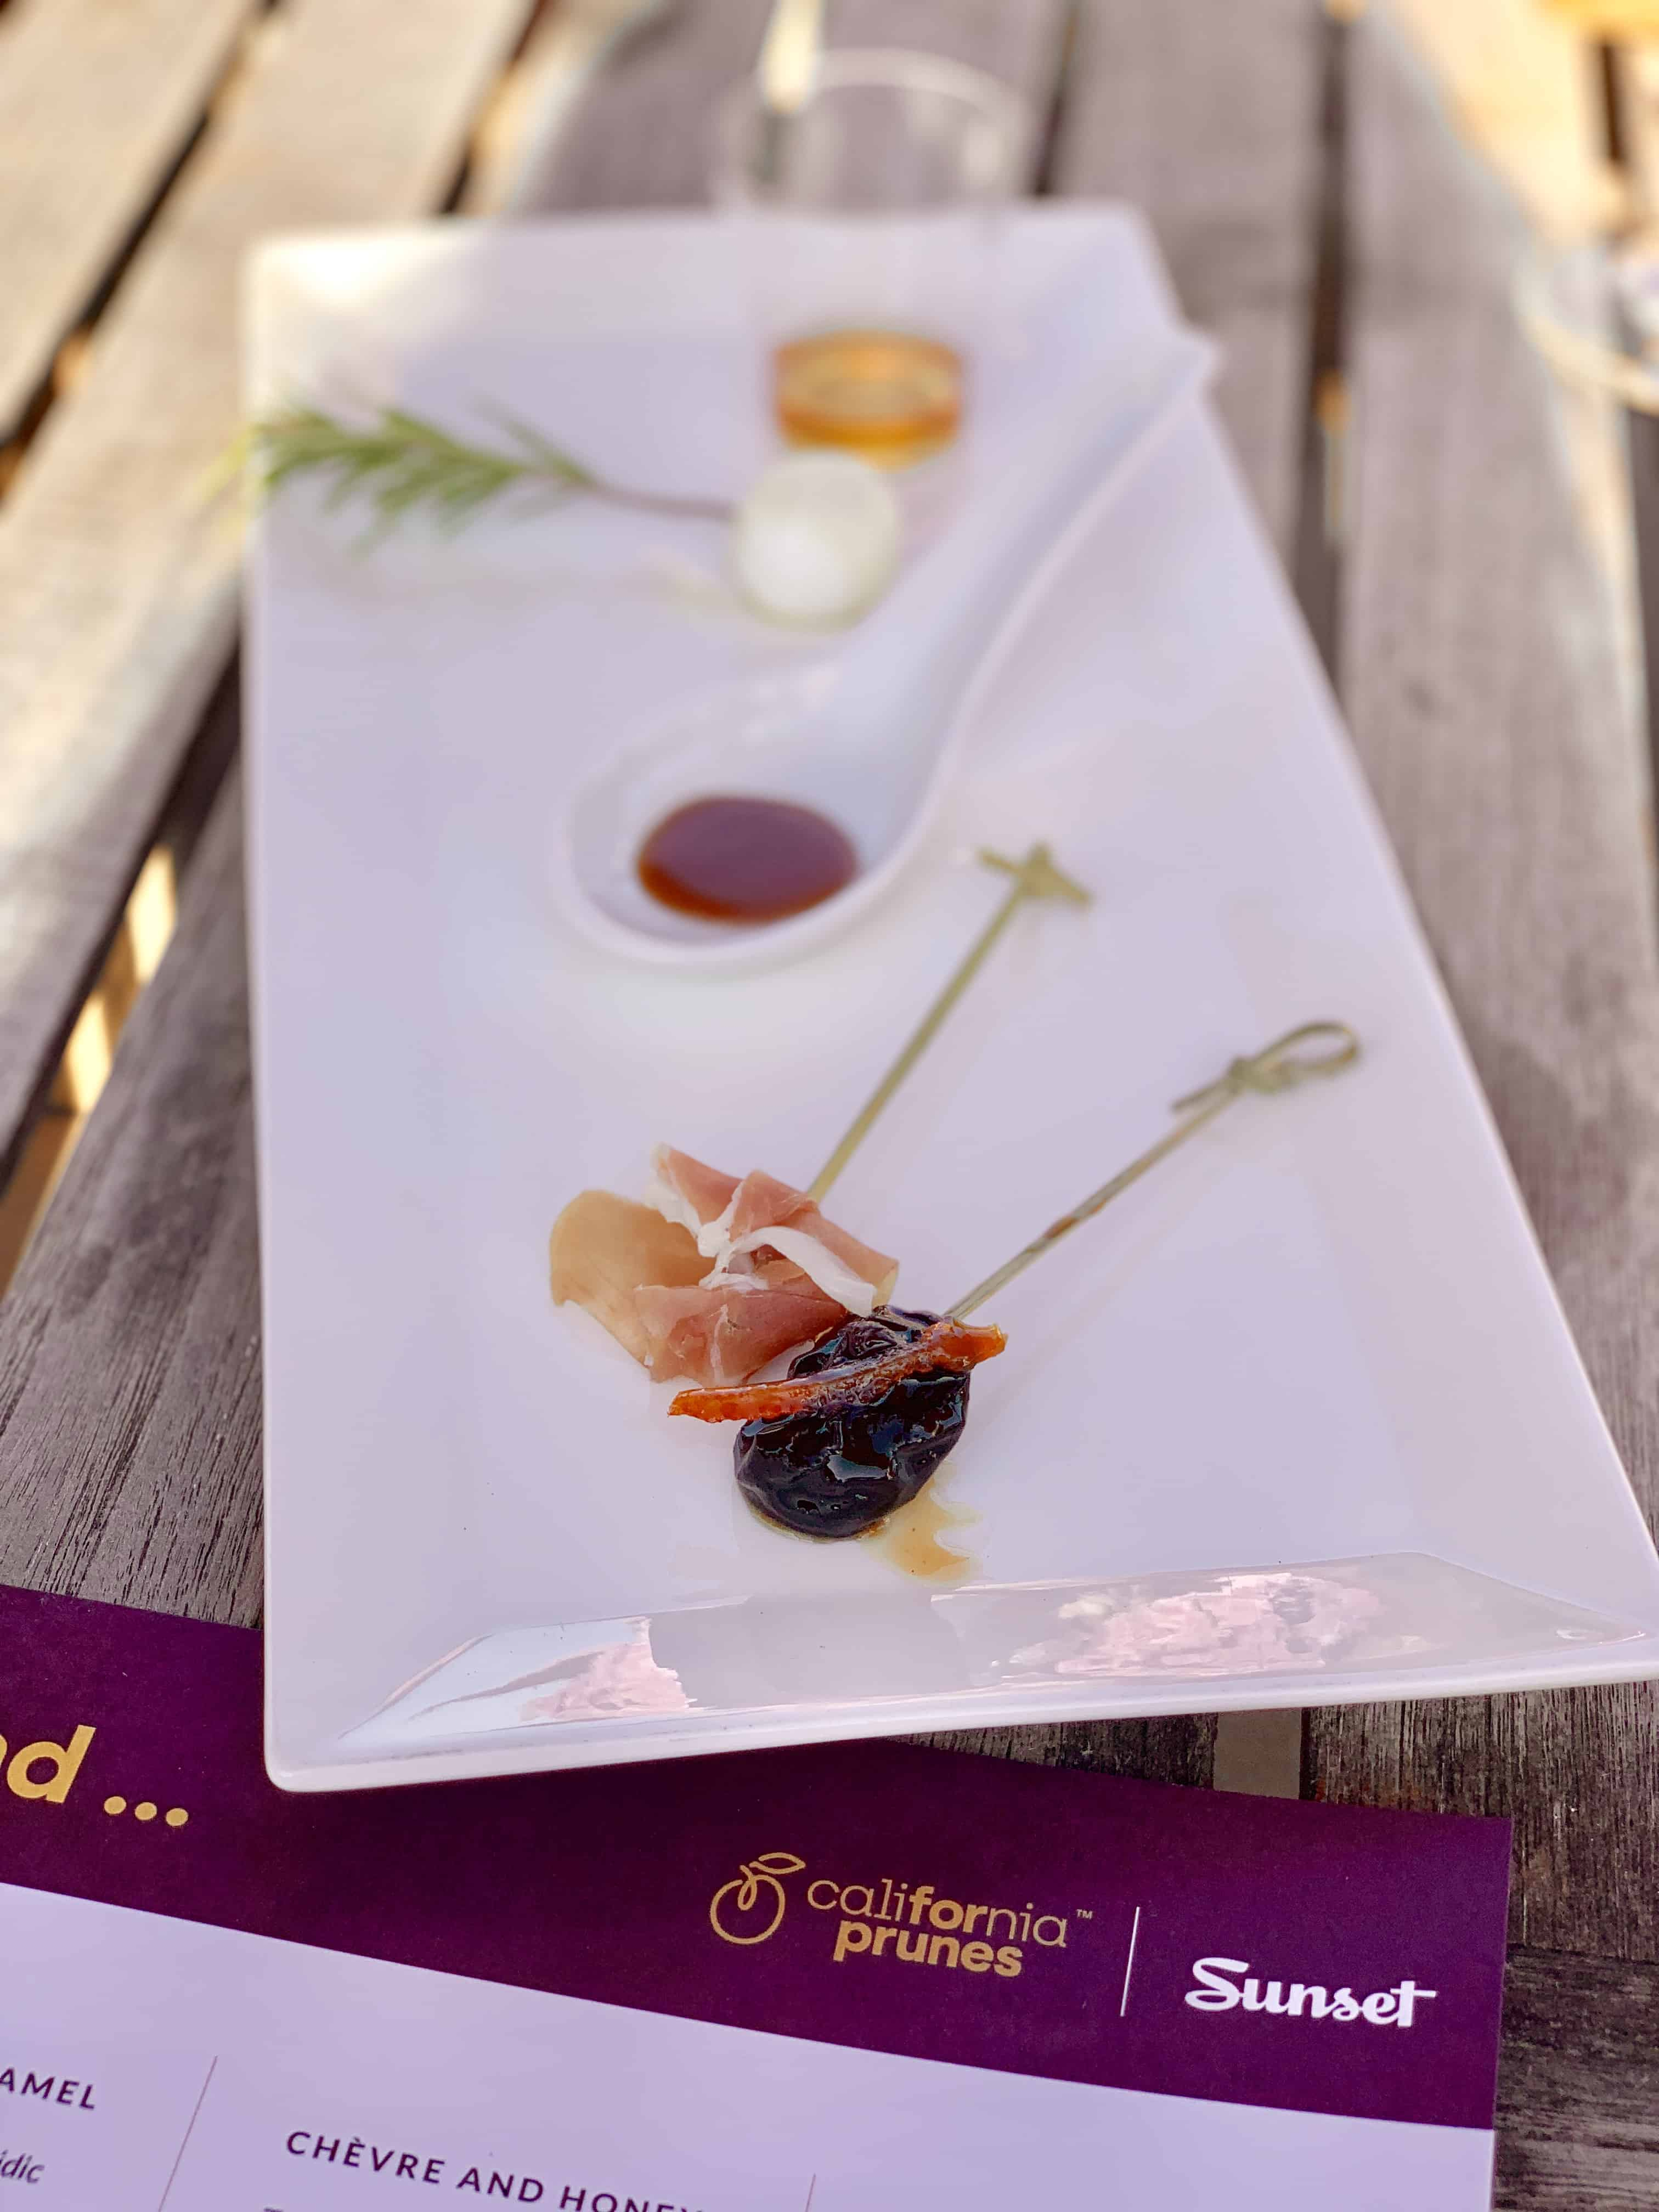 White plate with different ingredients to try with prunes.